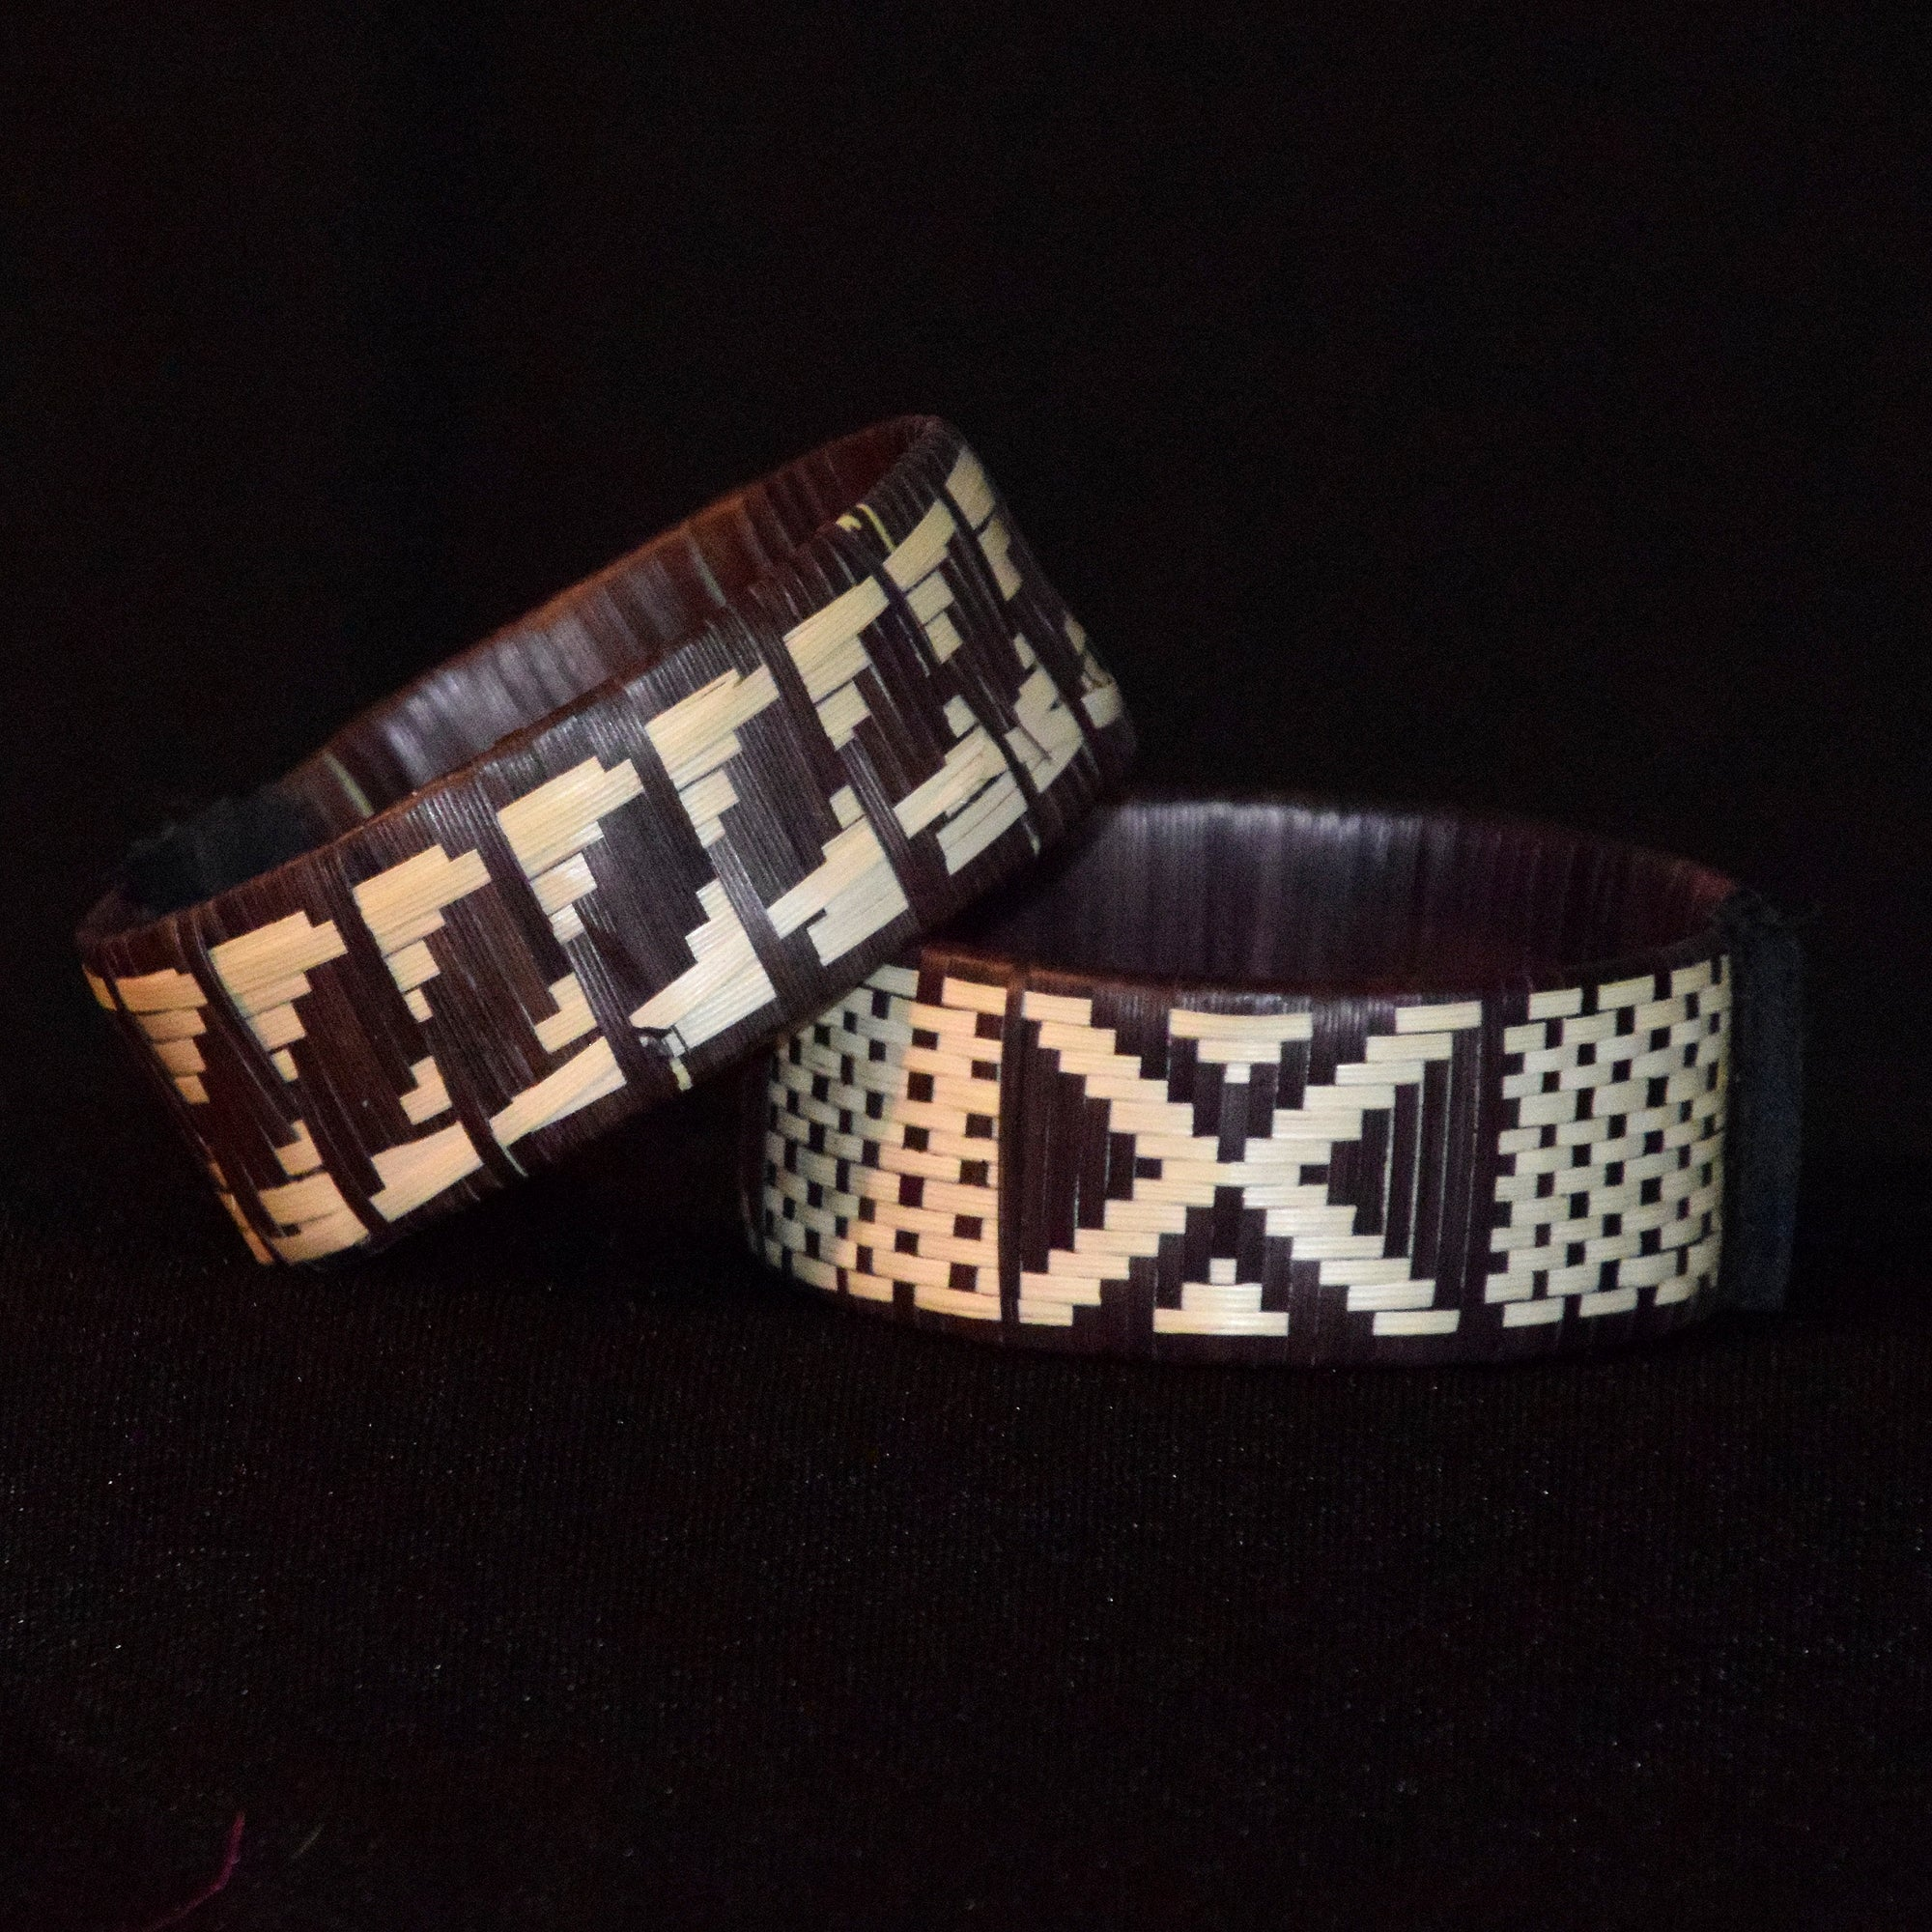 Caña flecha wrap-a-around bracelet